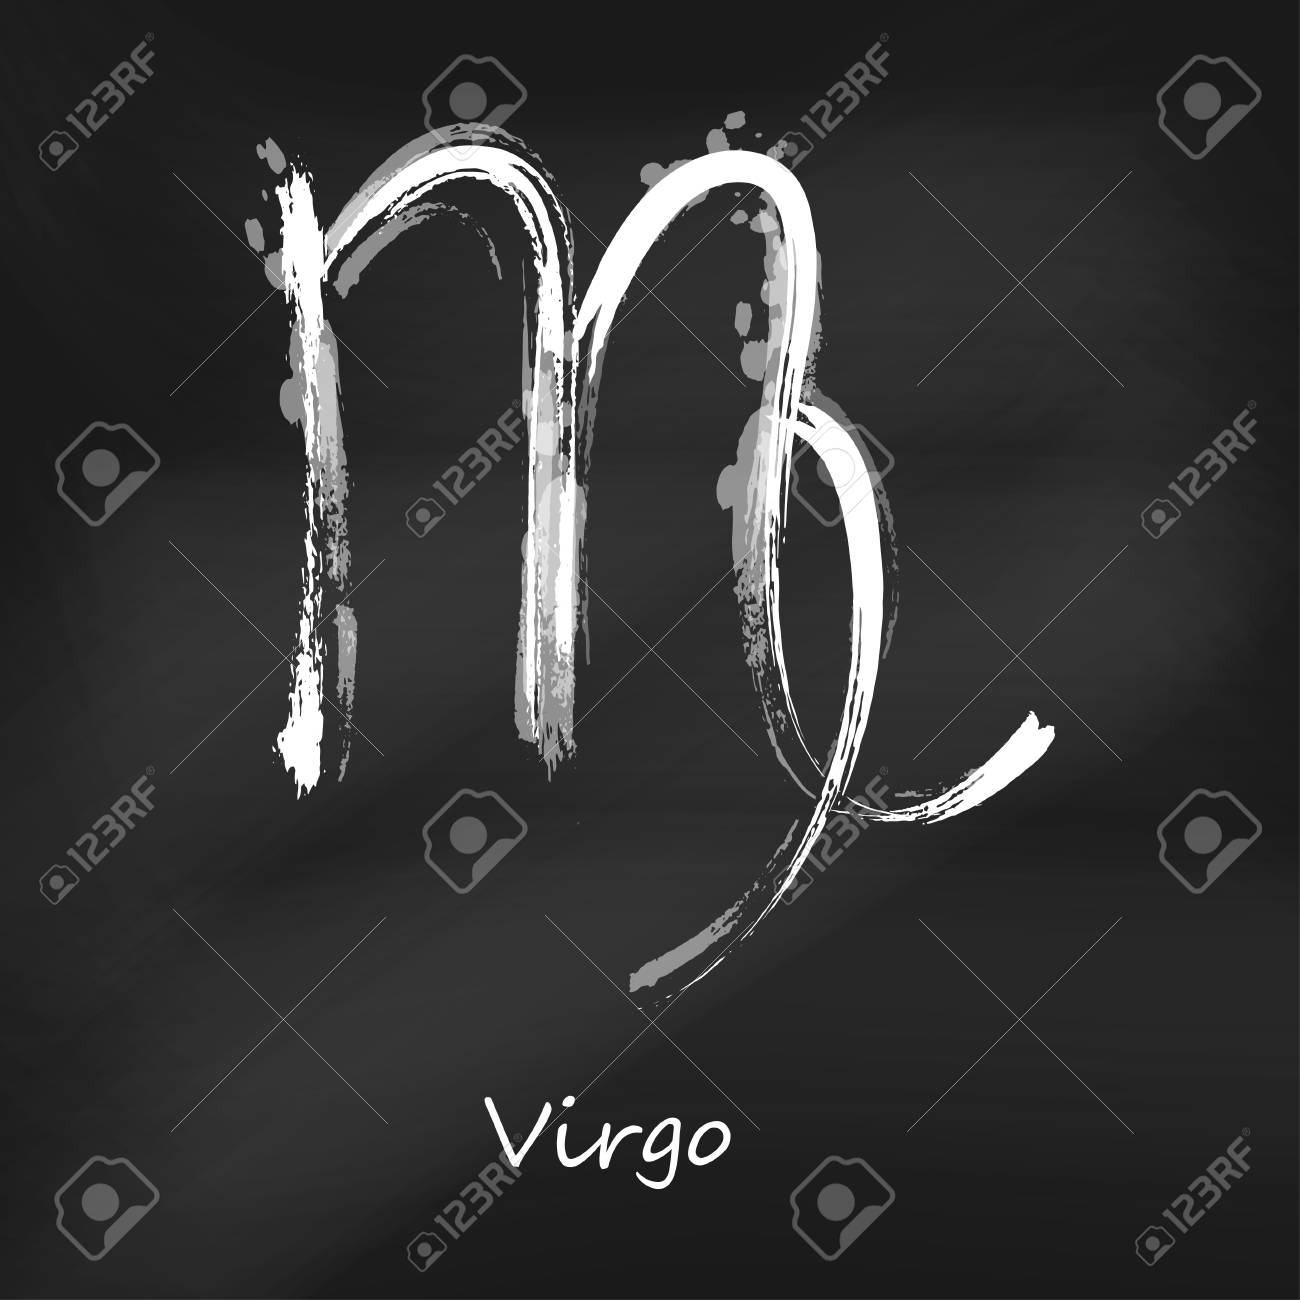 The astrological sign of Virgo and its personality